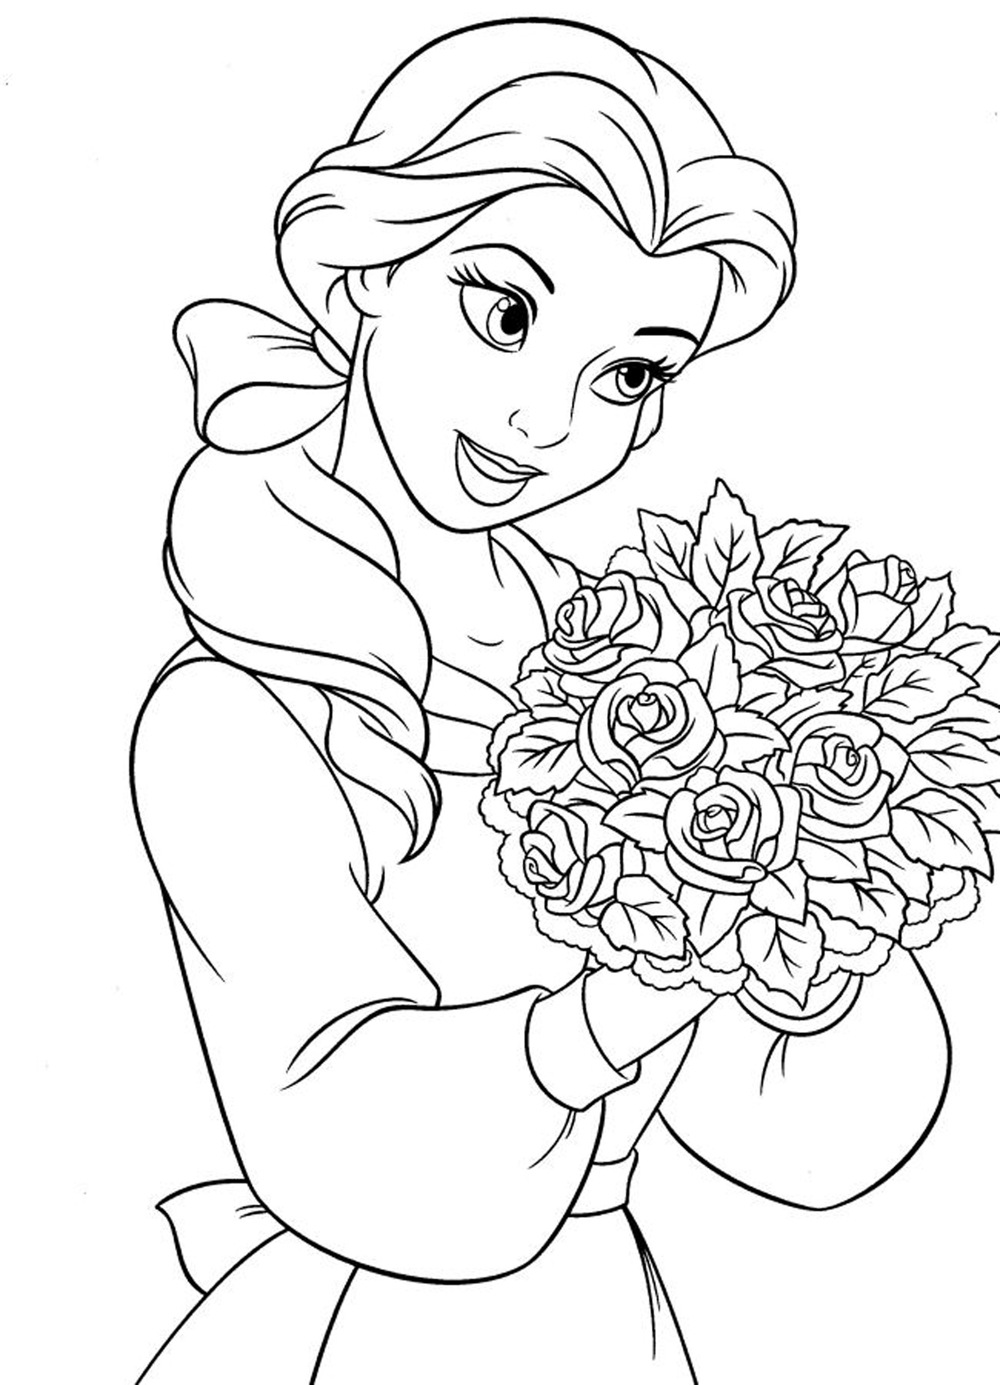 Elegant Disney Princess Coloring Pages 28 About Remodel Free